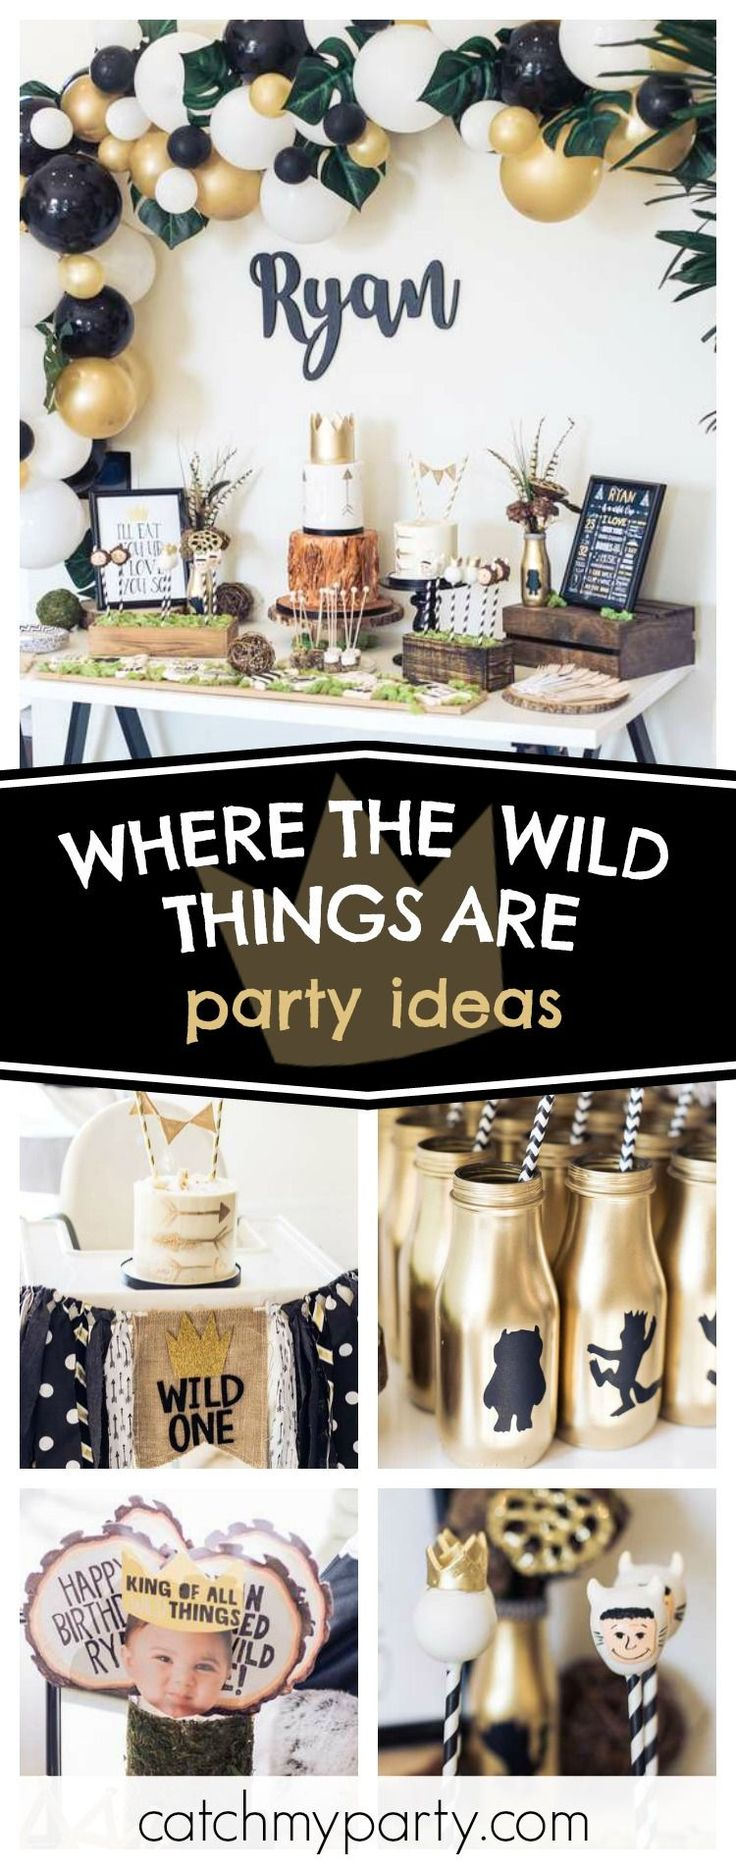 Check out this incredible Where the Wild Things Are Wild One birthday party! The Cake pops are awesome!! See more party ideas and share yours at CatchMyParty.com #catchmyparty #partyideas #wherethewildthingsarebirthdayparty #wildonebirthdayparty